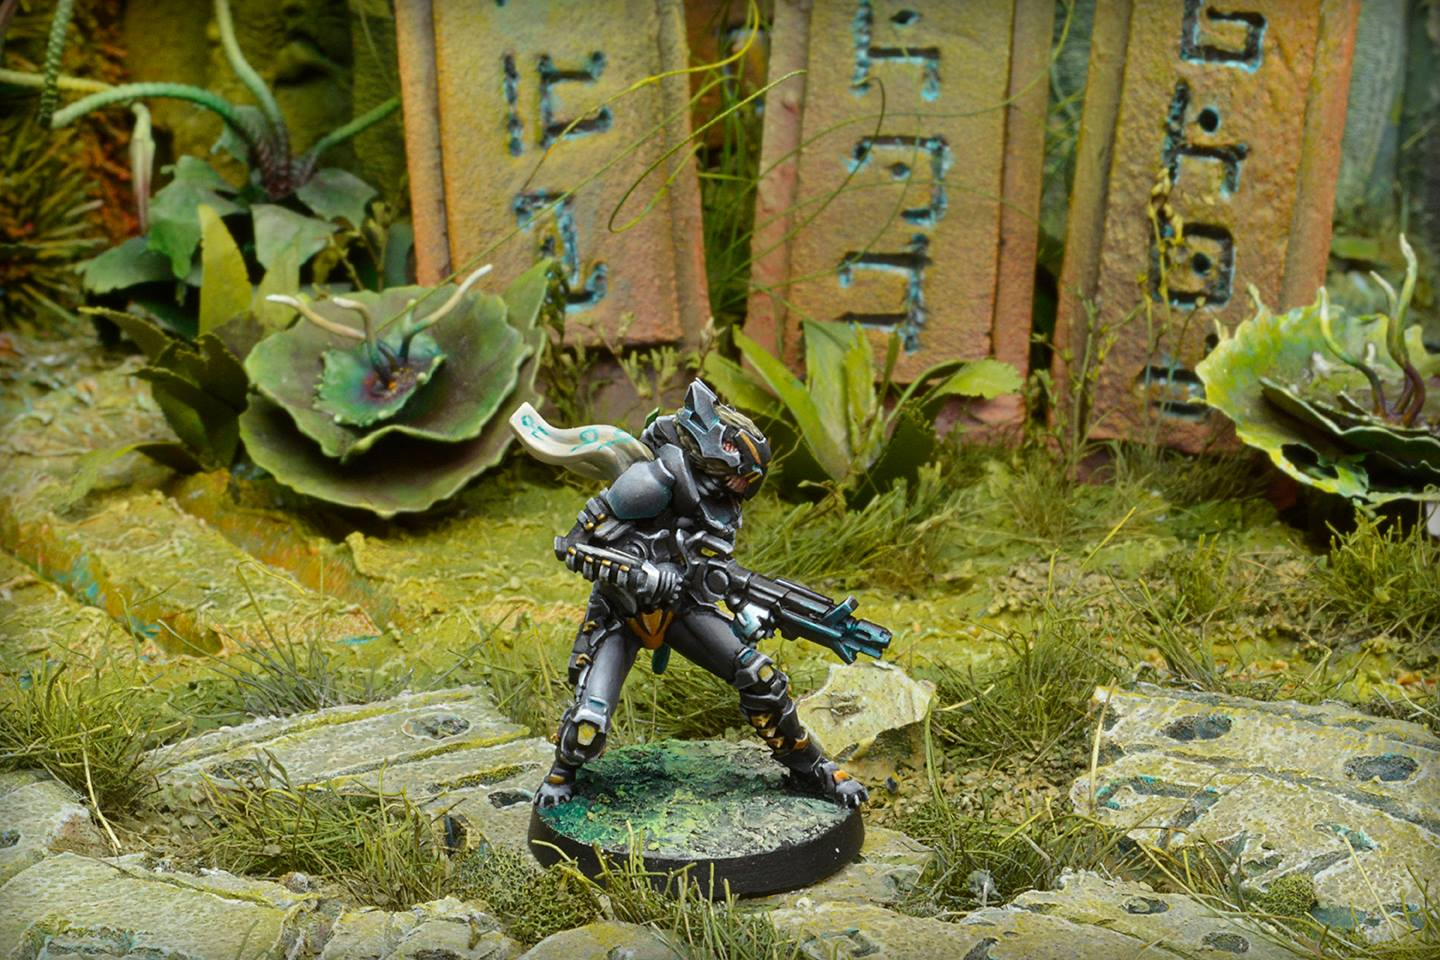 Igao Unit In Jungle Scenery - Infinity